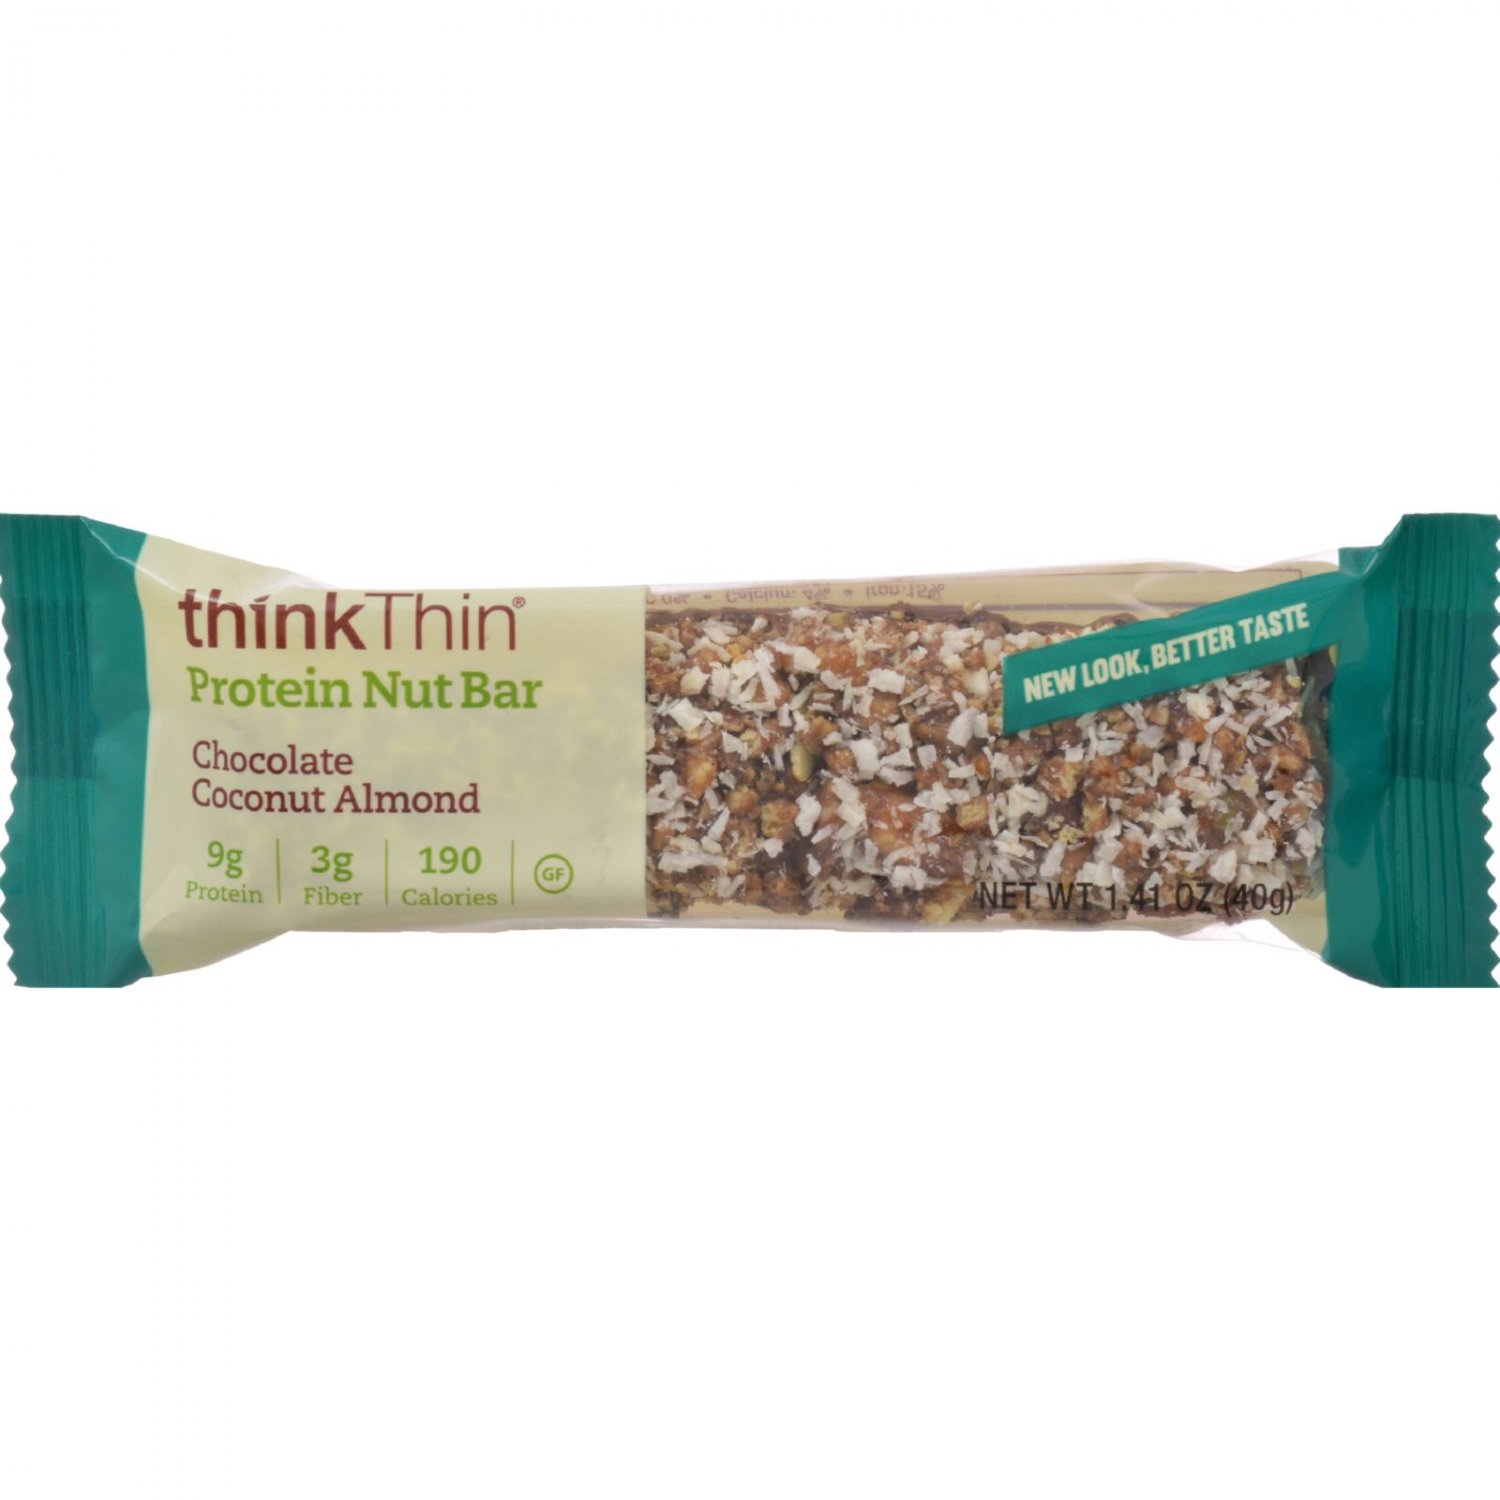 Think Products thinkThin Crunch Bar - Crunch Coconut Chocolate Mixed Nuts - 1.41 oz - Case of 10